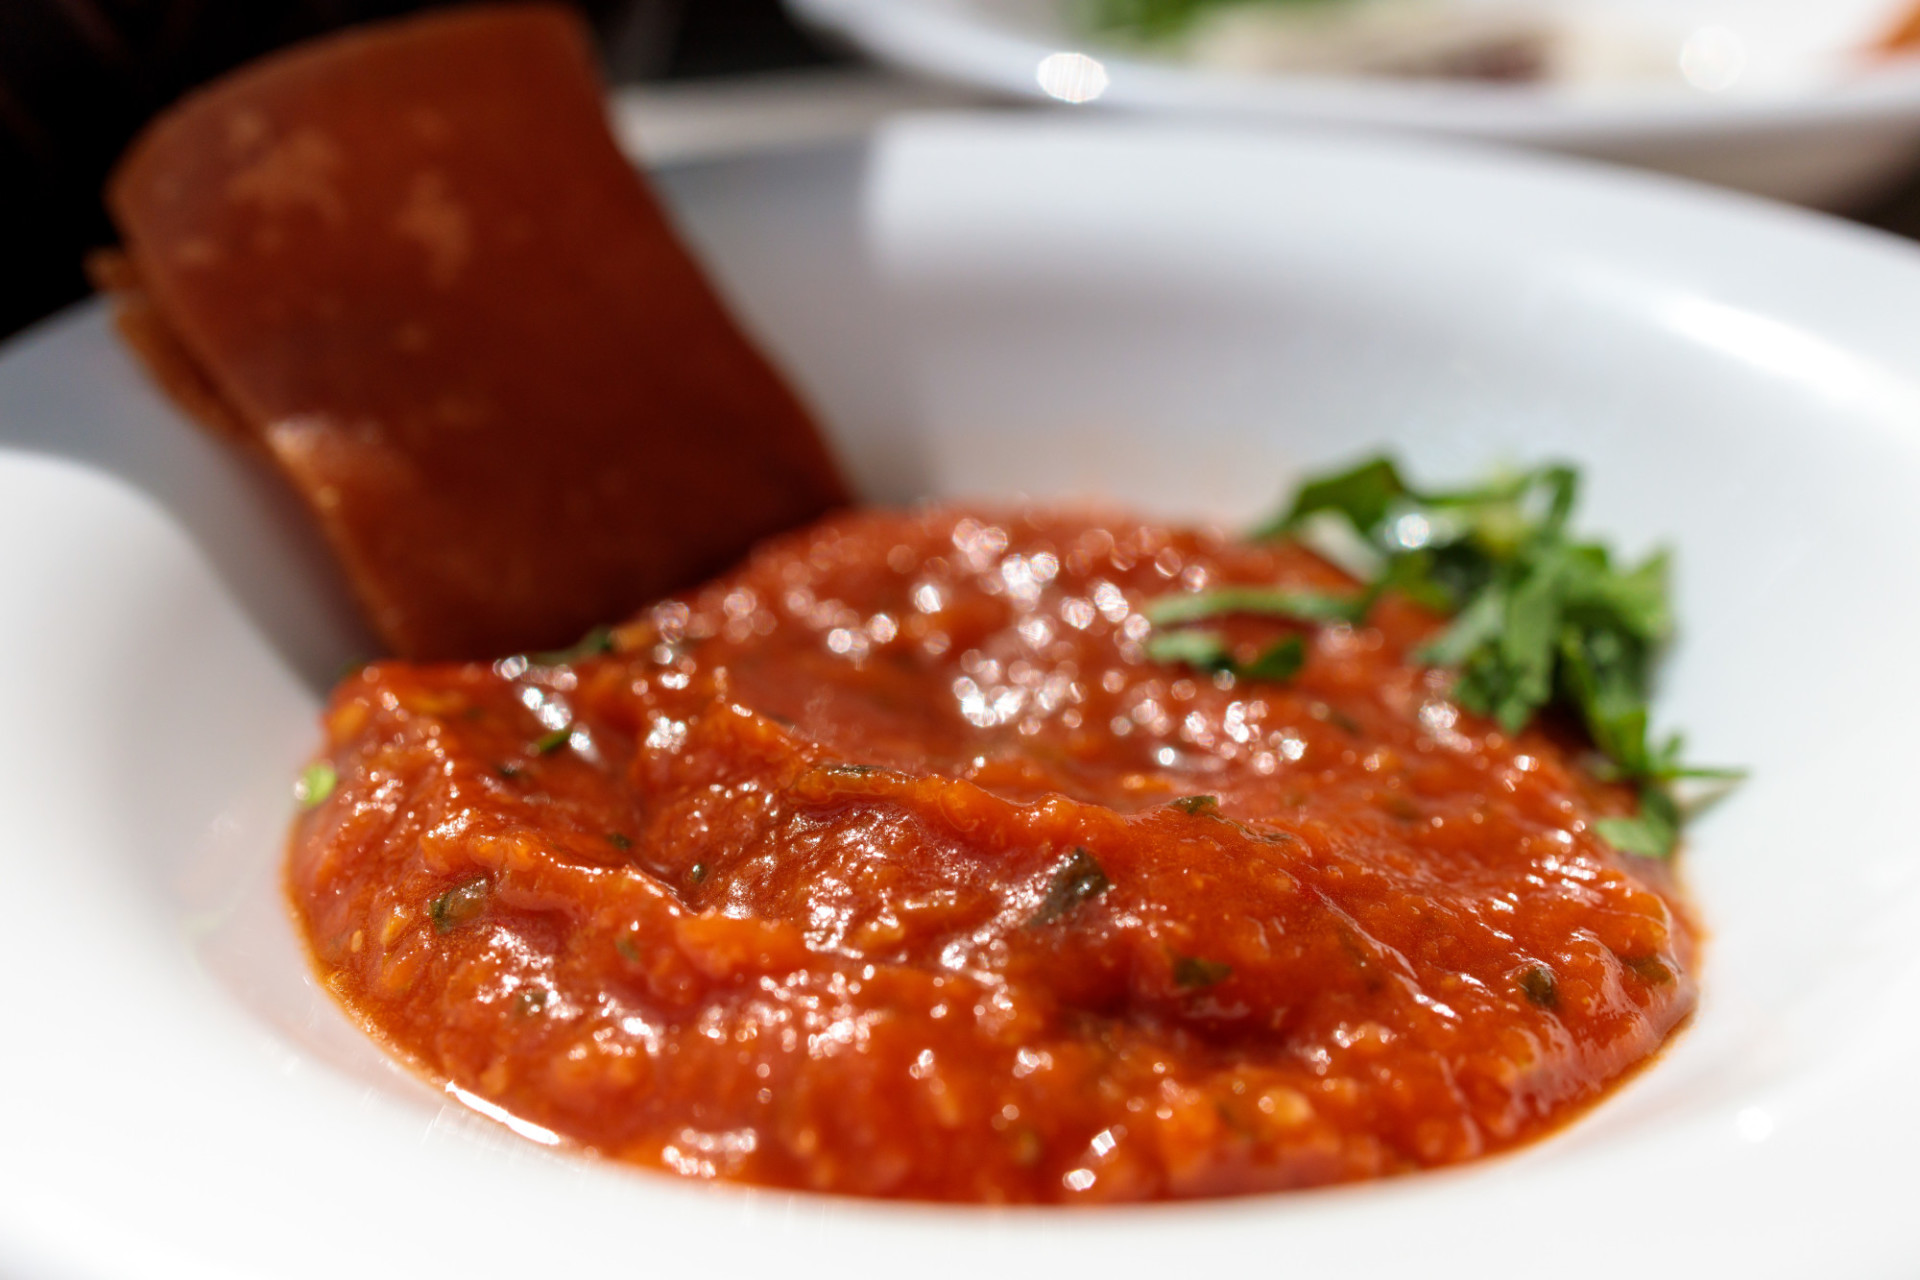 Arabic dip made with tomatoes and peppers